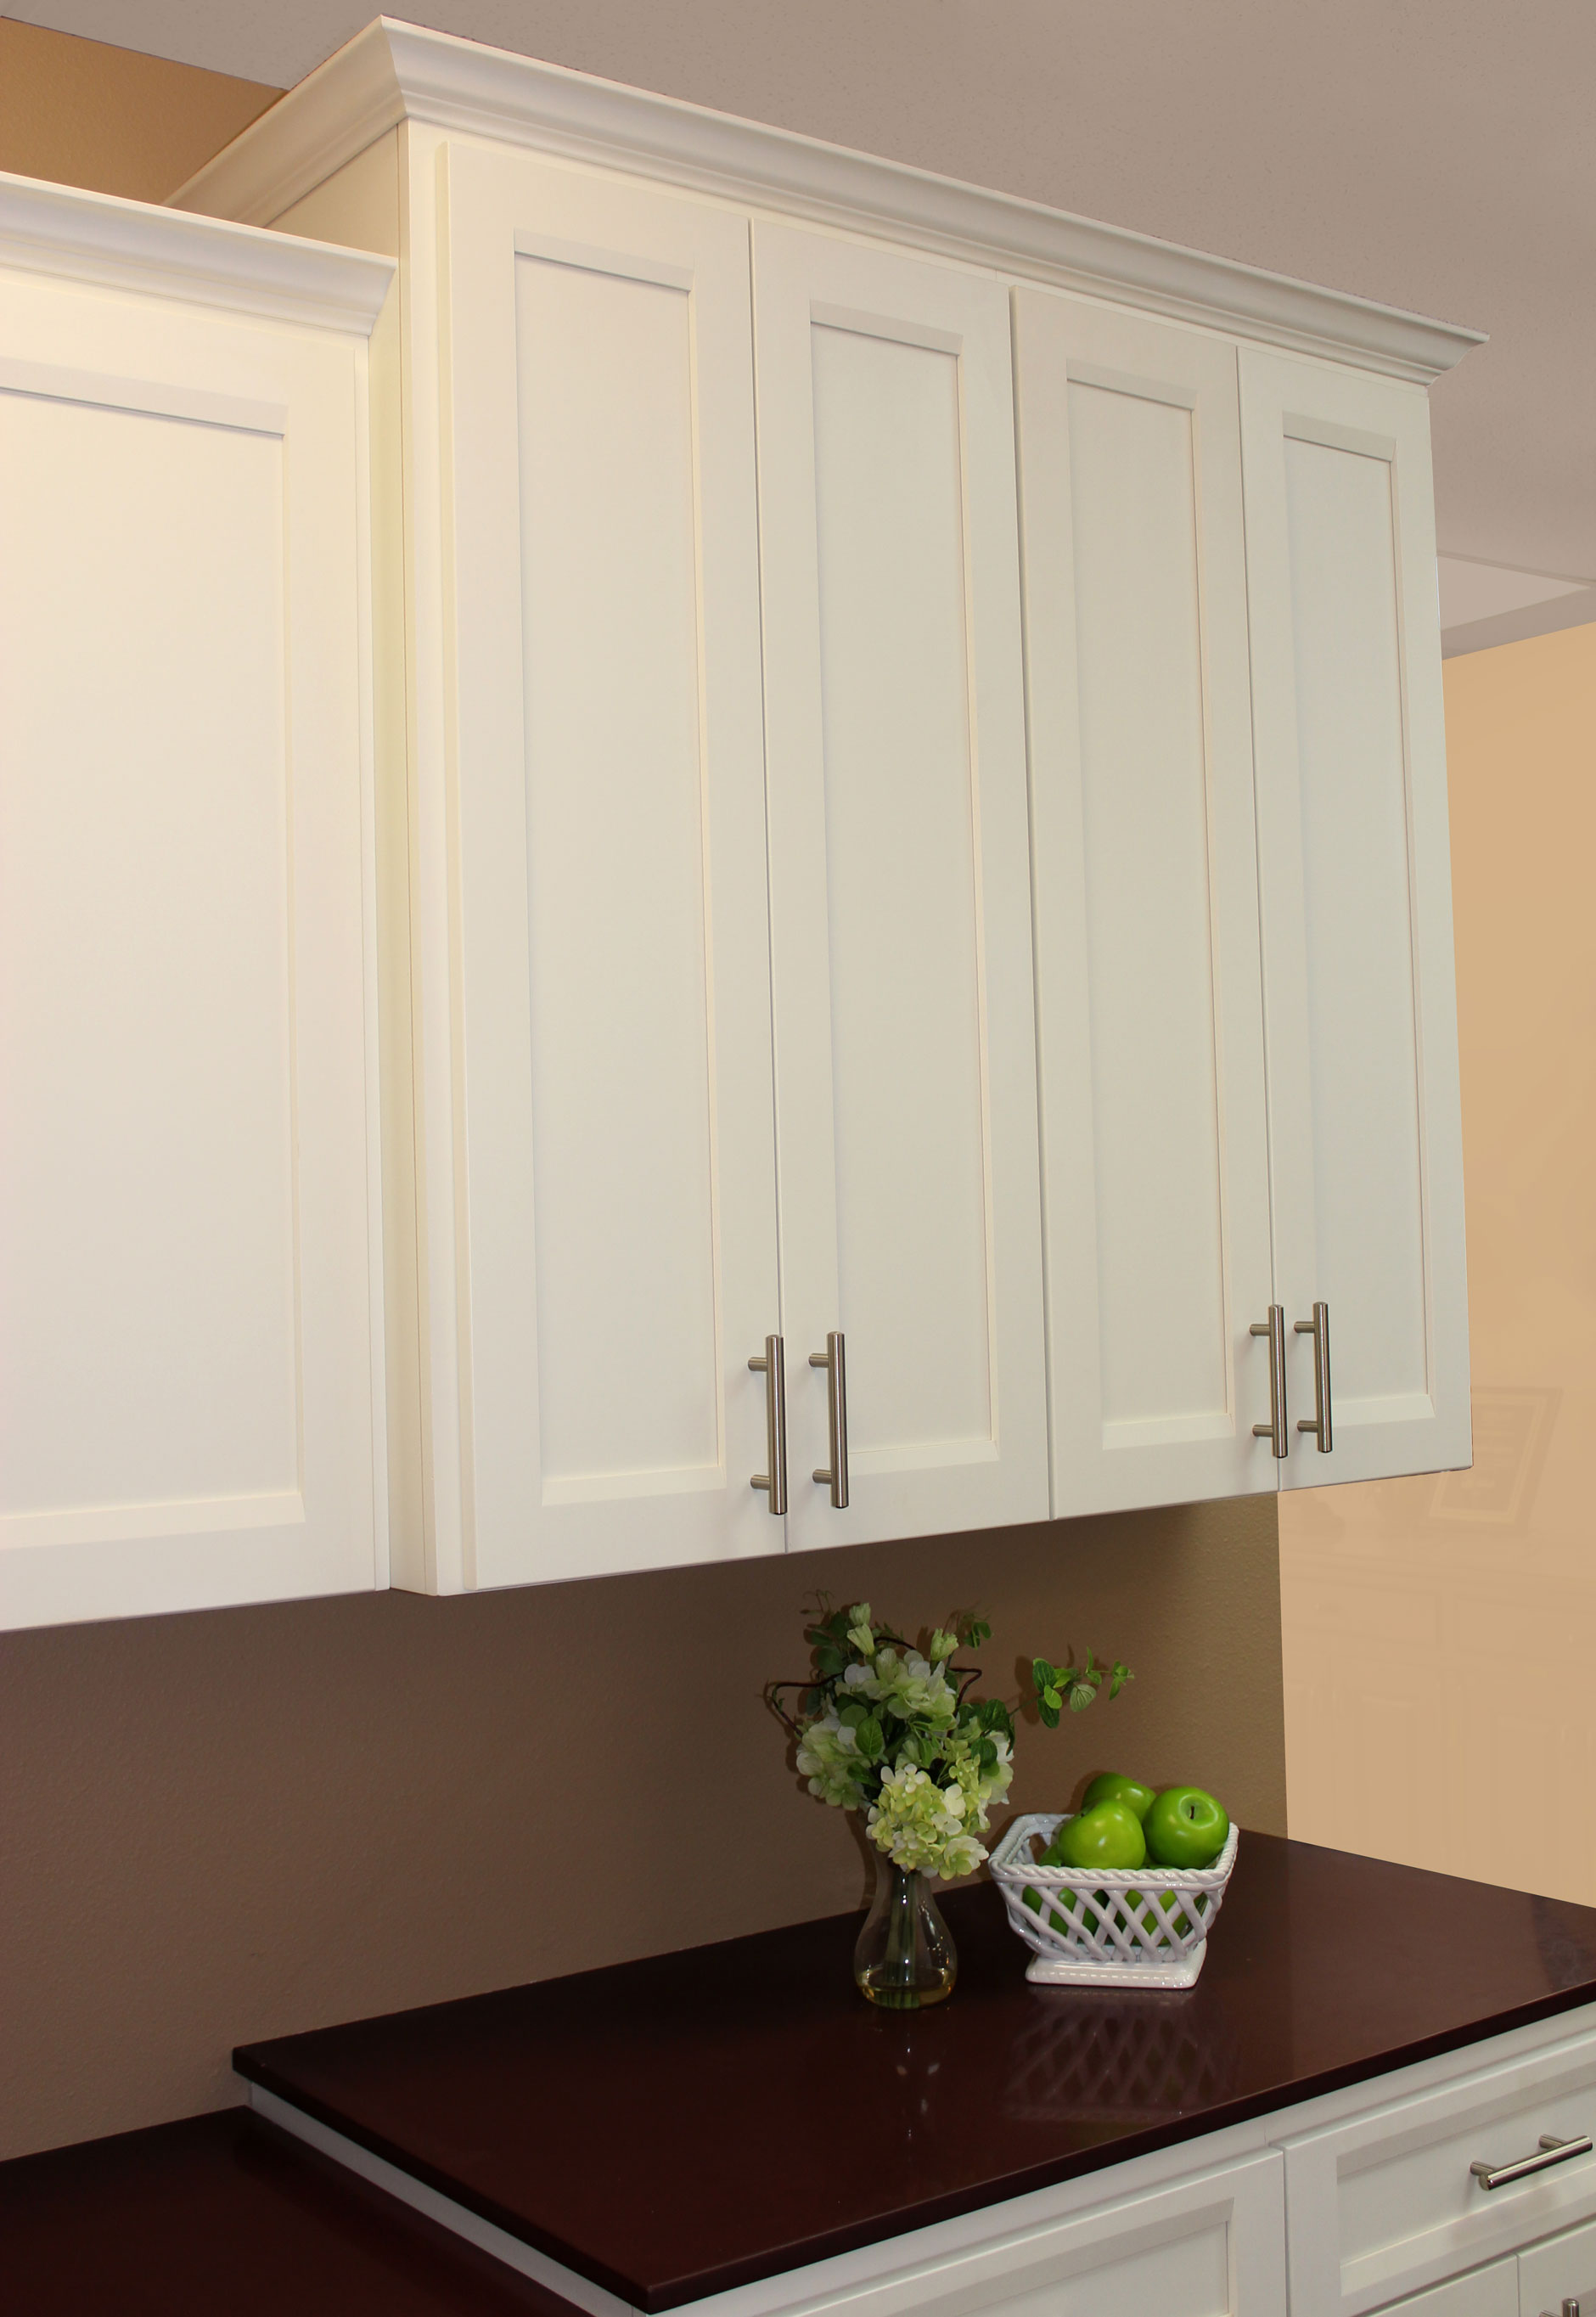 Kitchen upper cabinet bumped up and out